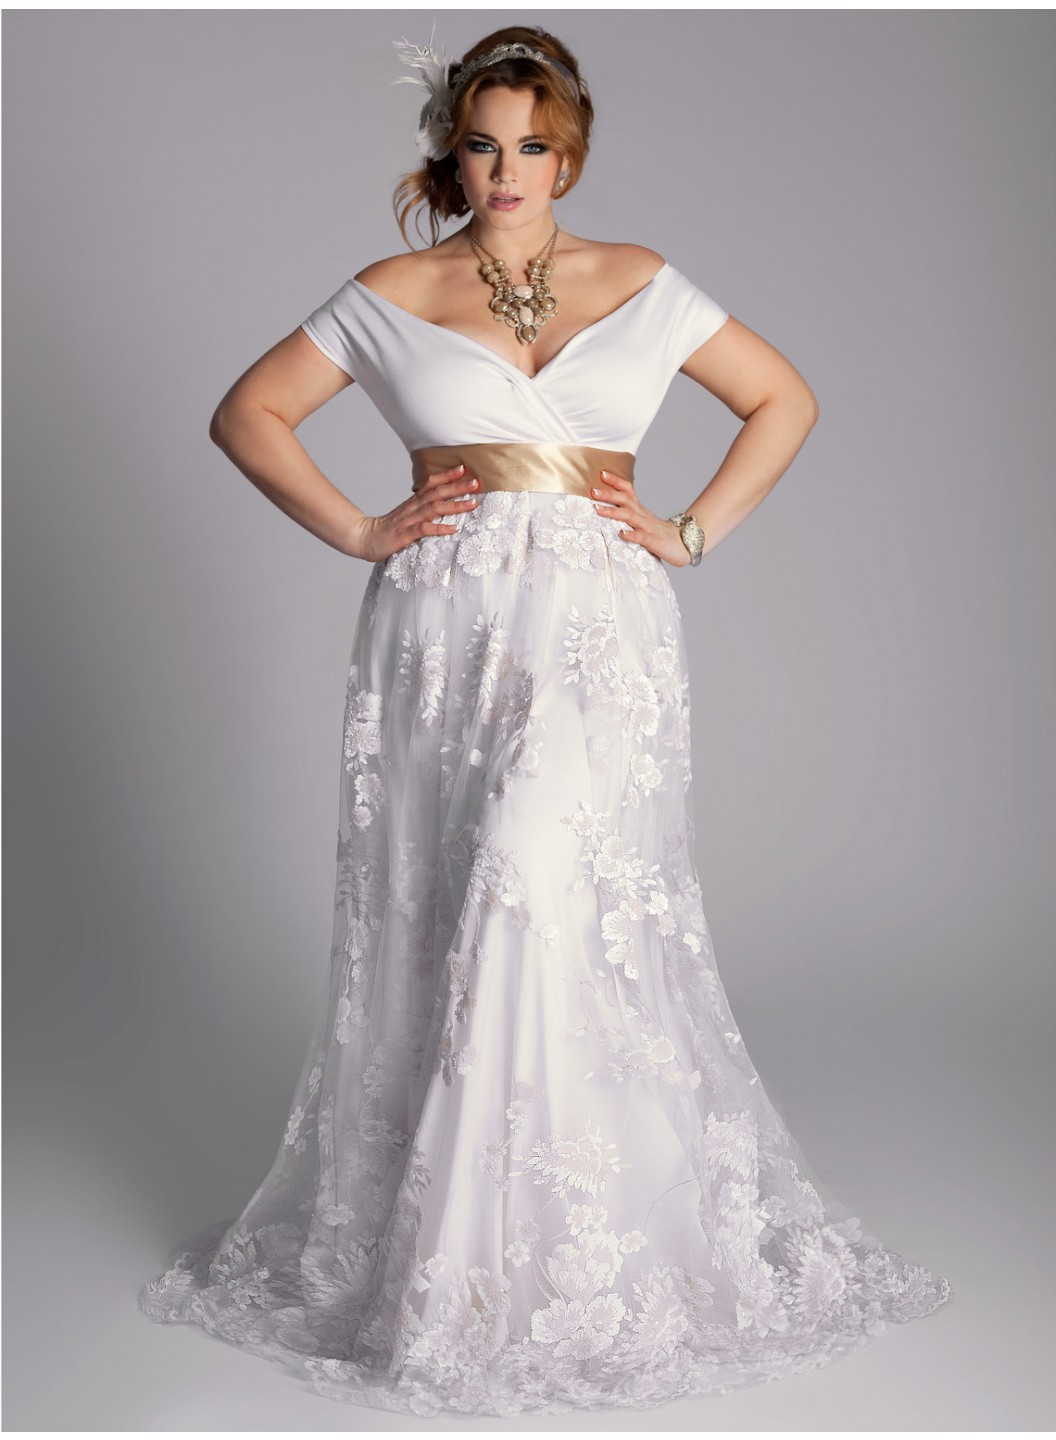 Non Traditional Vintage Wedding Dresses Viewing Gallery